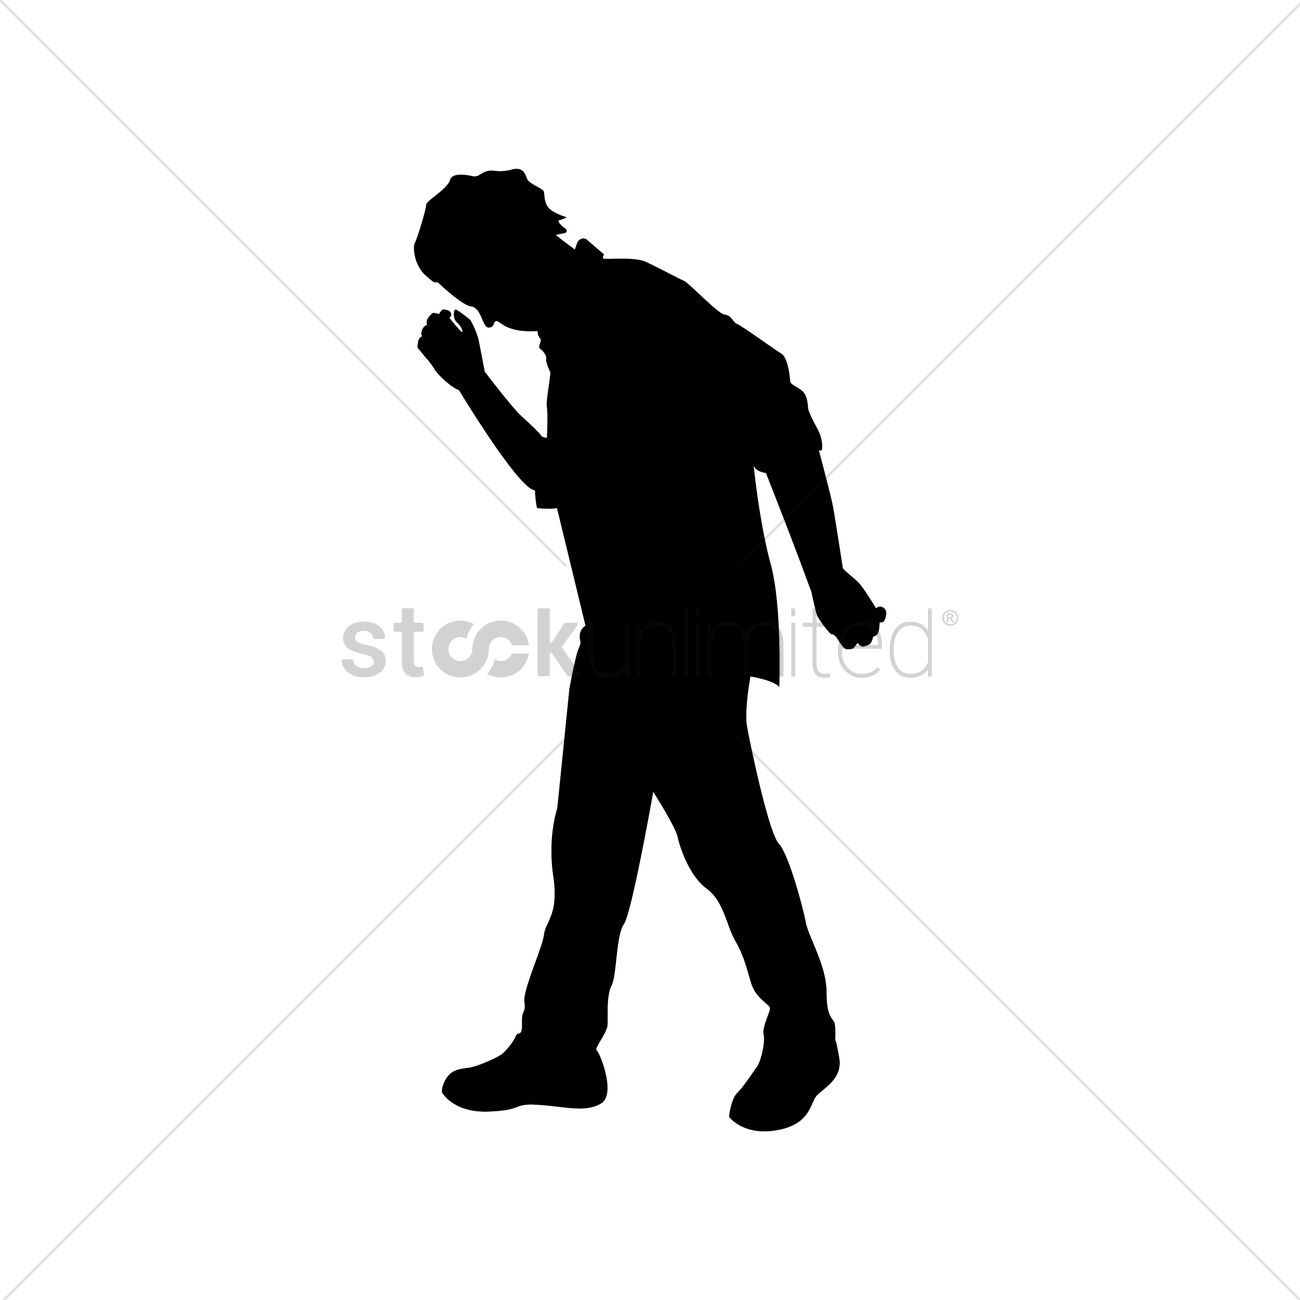 1300x1300 Silhouette Of Man Walking Vector Image